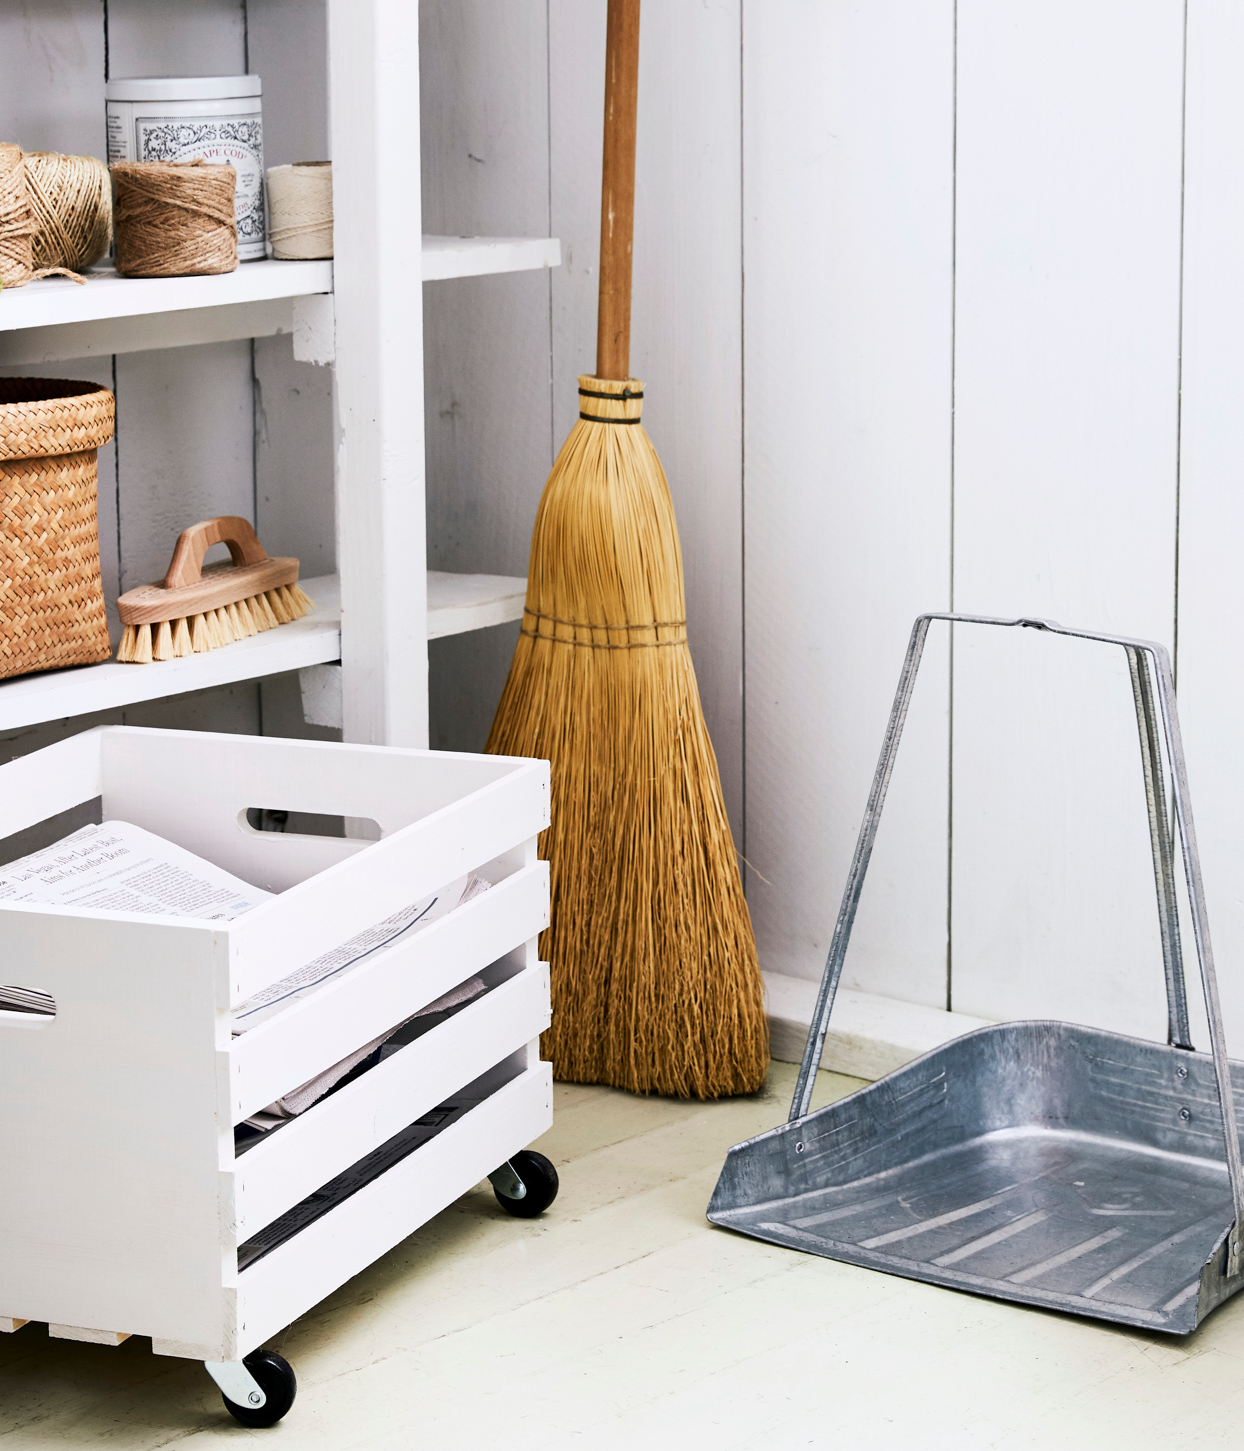 organized cleaning supply closet with broom and dustpan